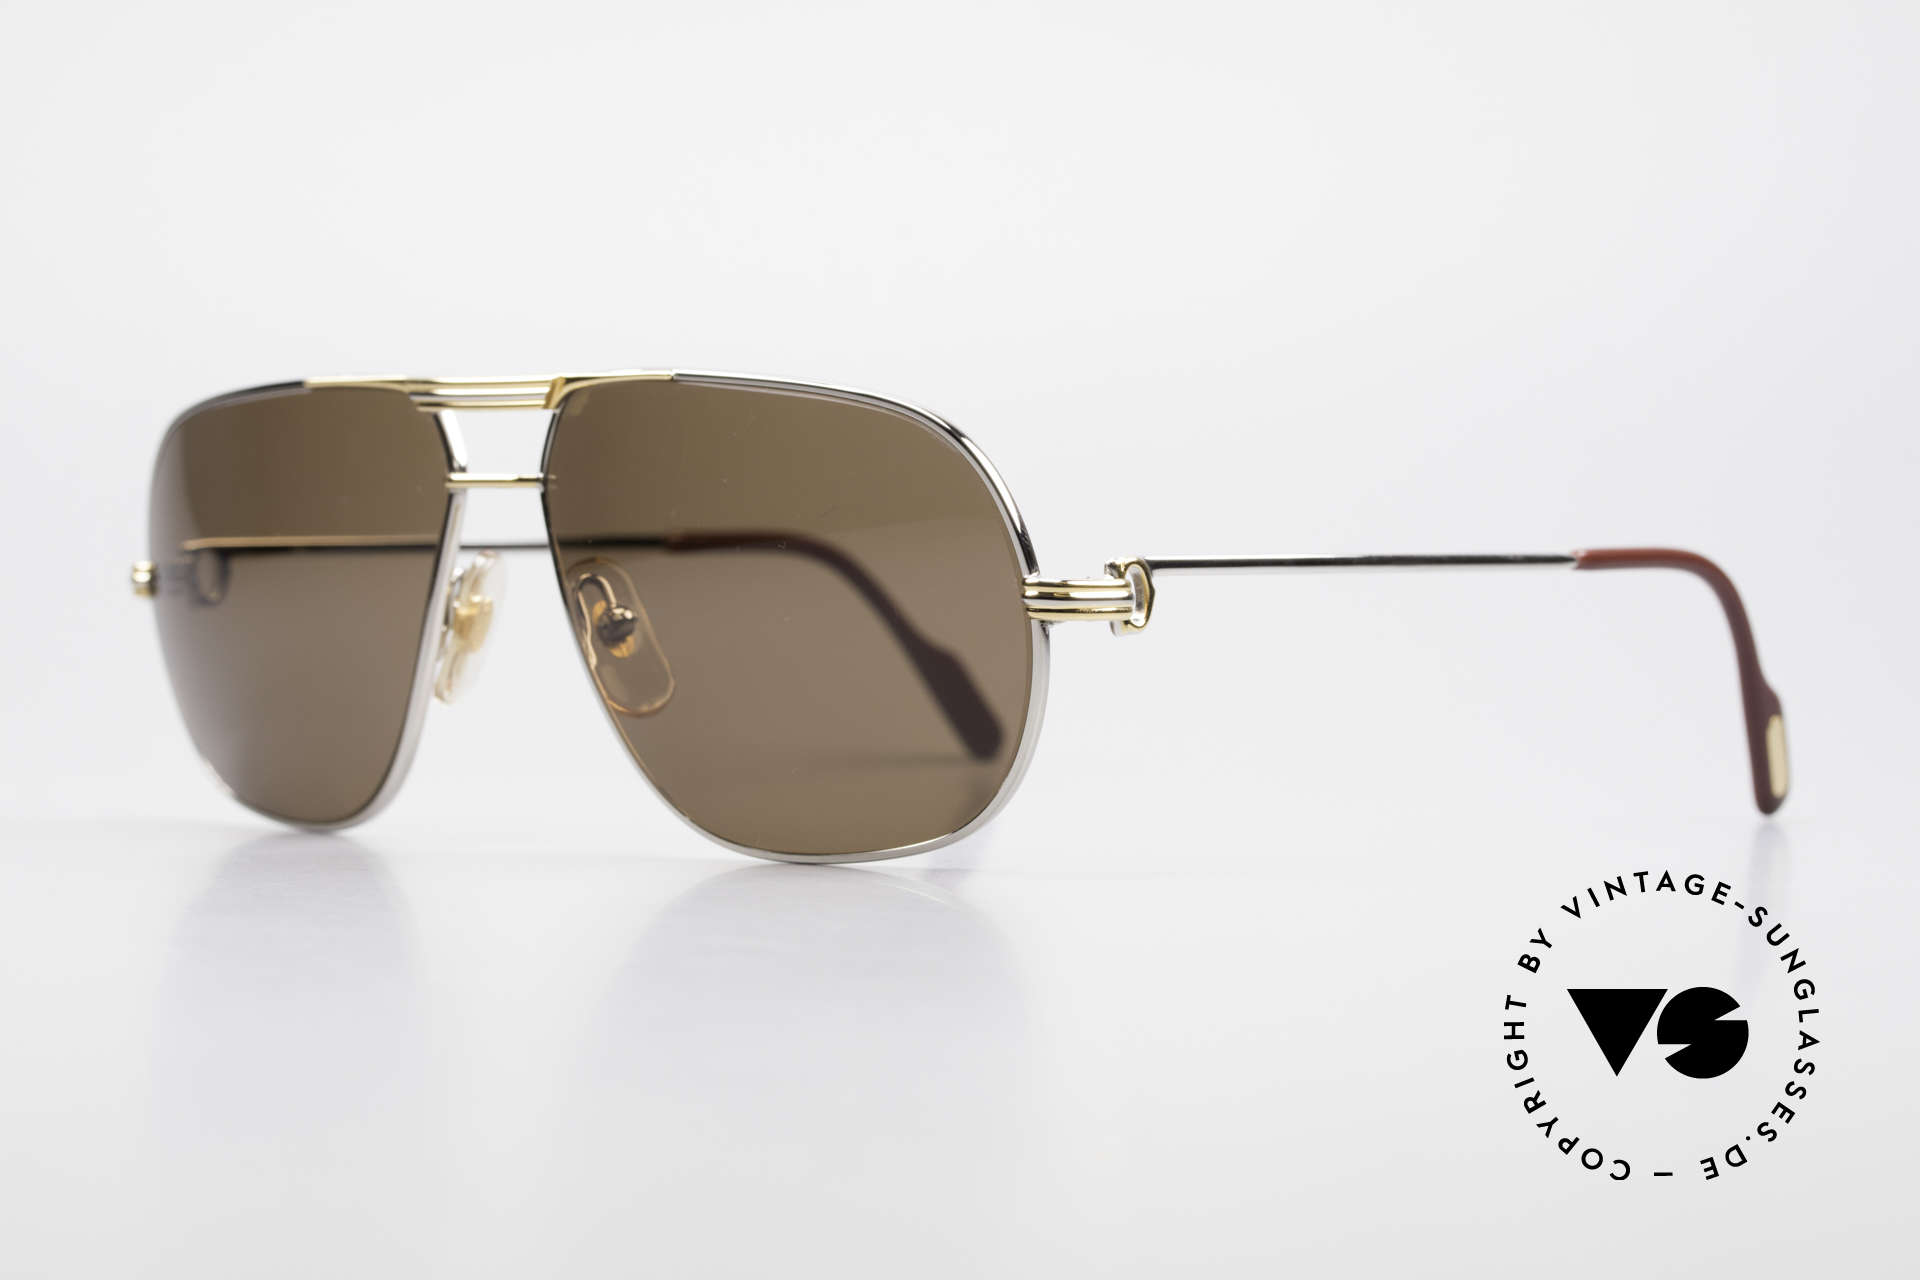 Cartier Tank - L Rare Platinum Finish Shades, with new brown-POLARIZED sun lenses; 100% UV protect., Made for Men